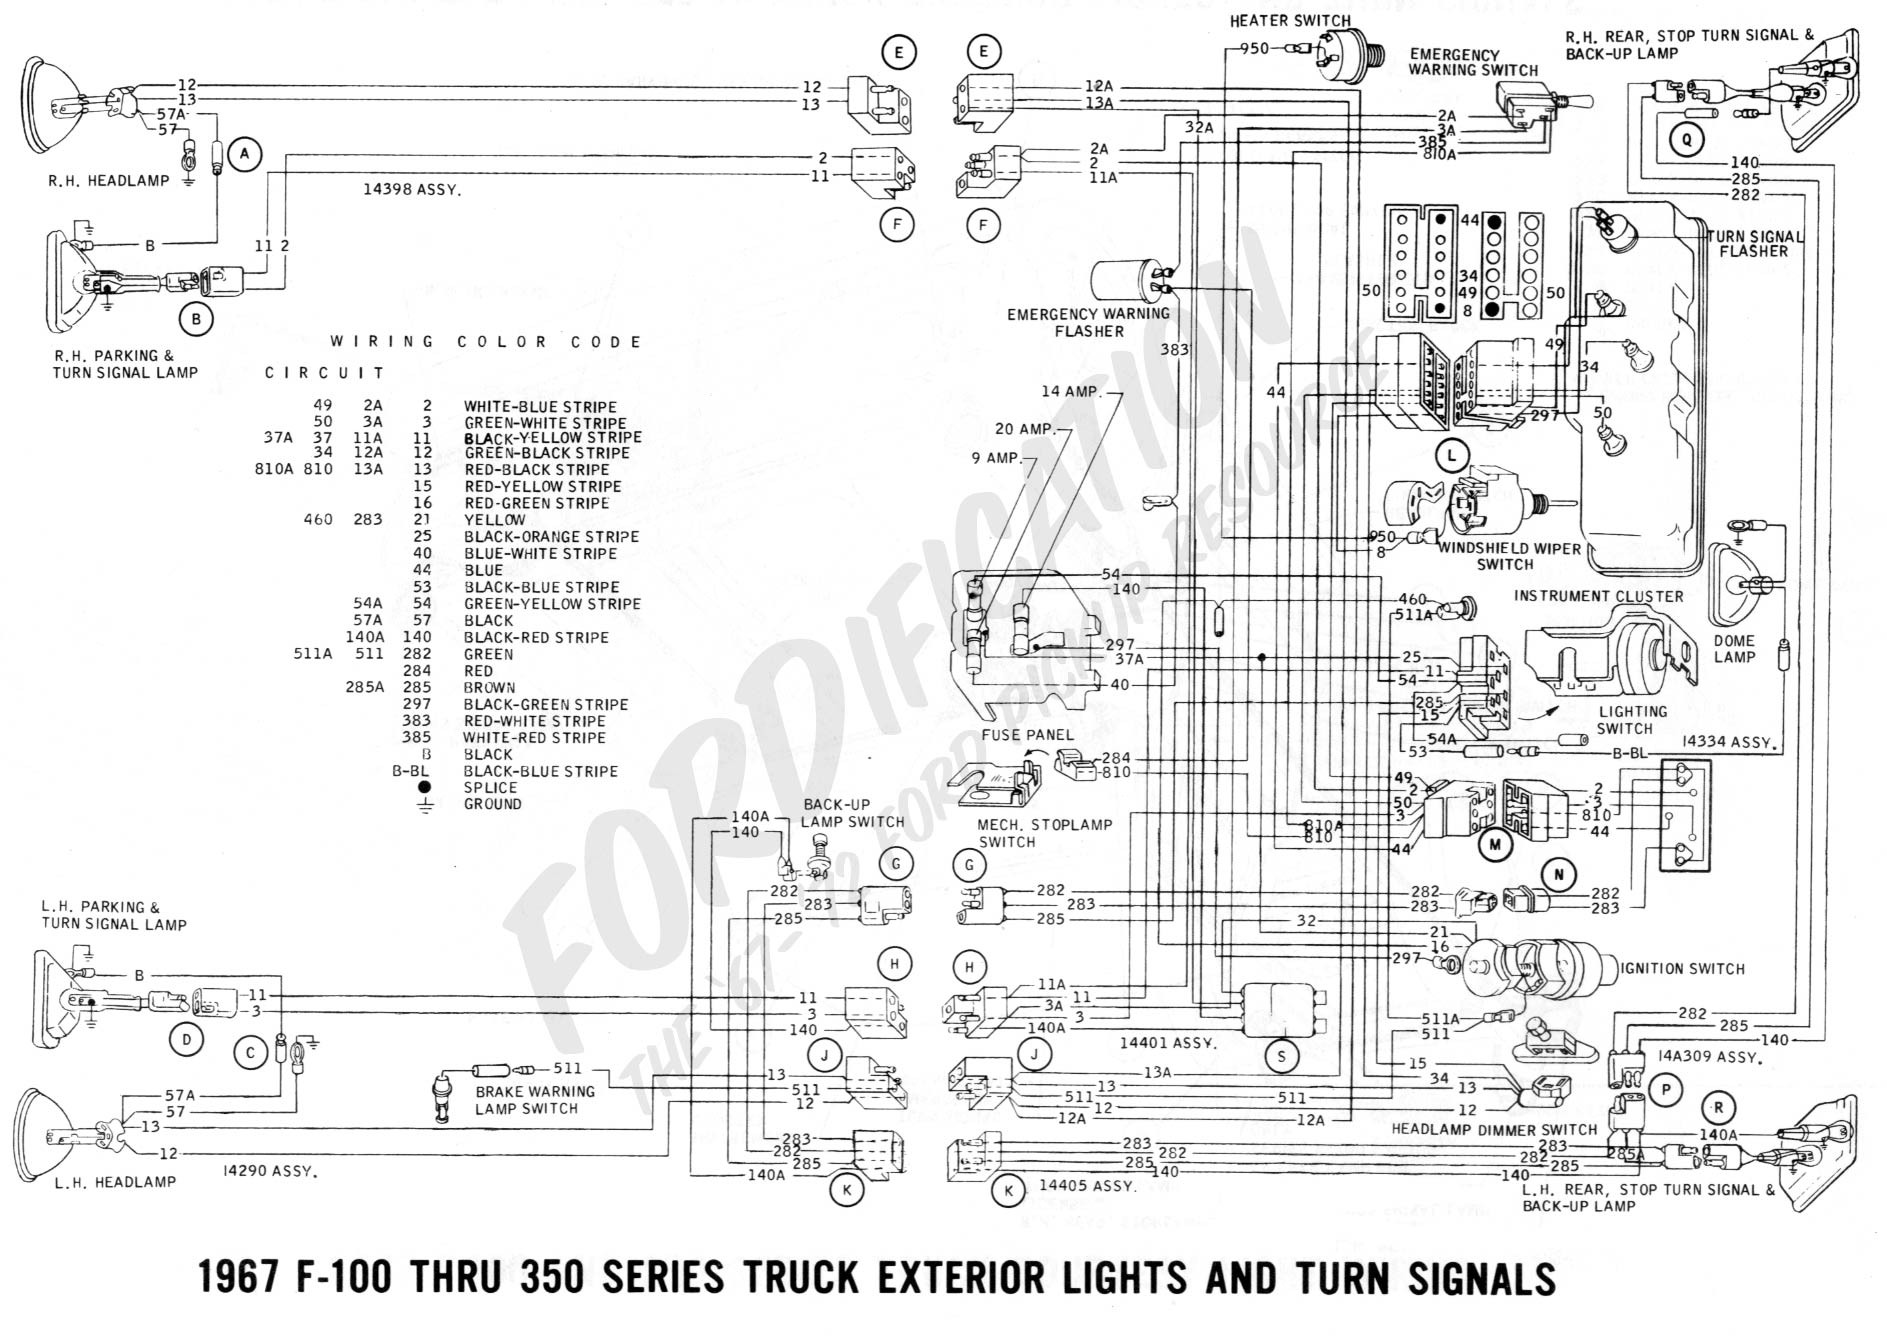 1969 ford wiring color codes wire center u2022 rh theiquest co Delco Radio  Wiring Color Codes Explorer Wiring Diagram Color Code